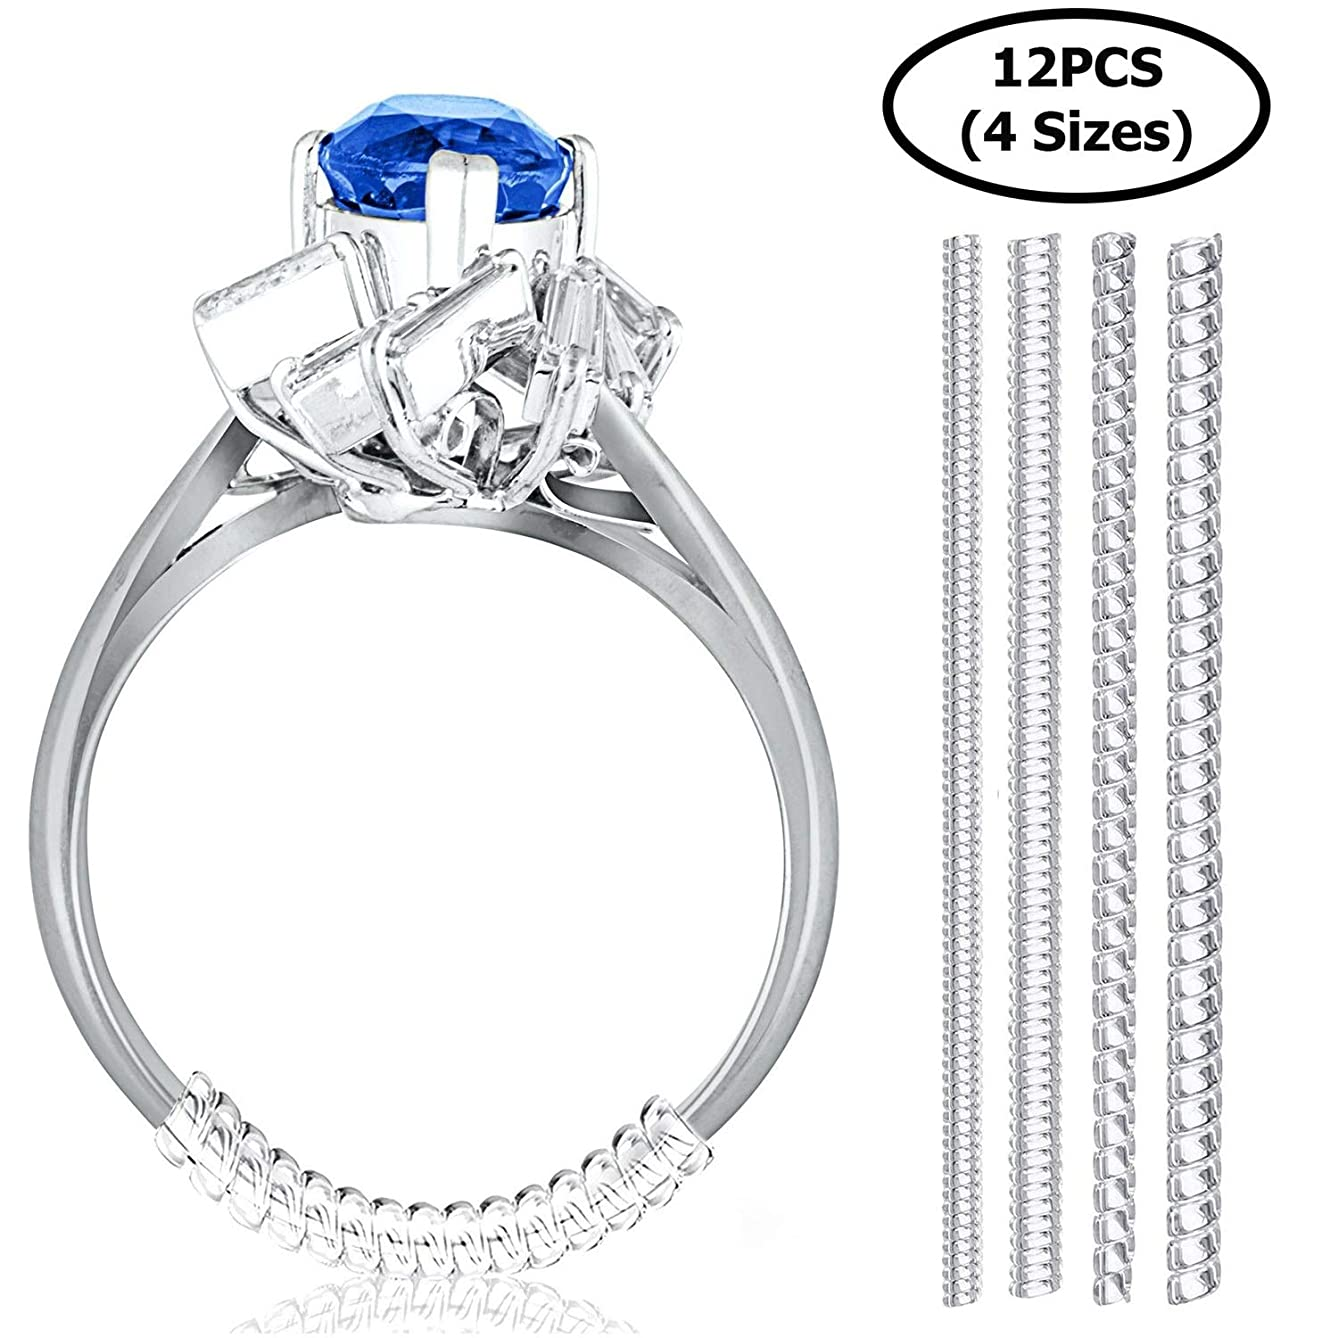 Set of 12 Ring Size Adjuster for Loose Rings | 4 Sizes - 2mm/ 3mm/ 4mm/ 5mm | Ring Fitter, Sizer, Clear Spiral Silicone Tightener | Fits Men and Women Rings | with Jewelry Polishing Cloth